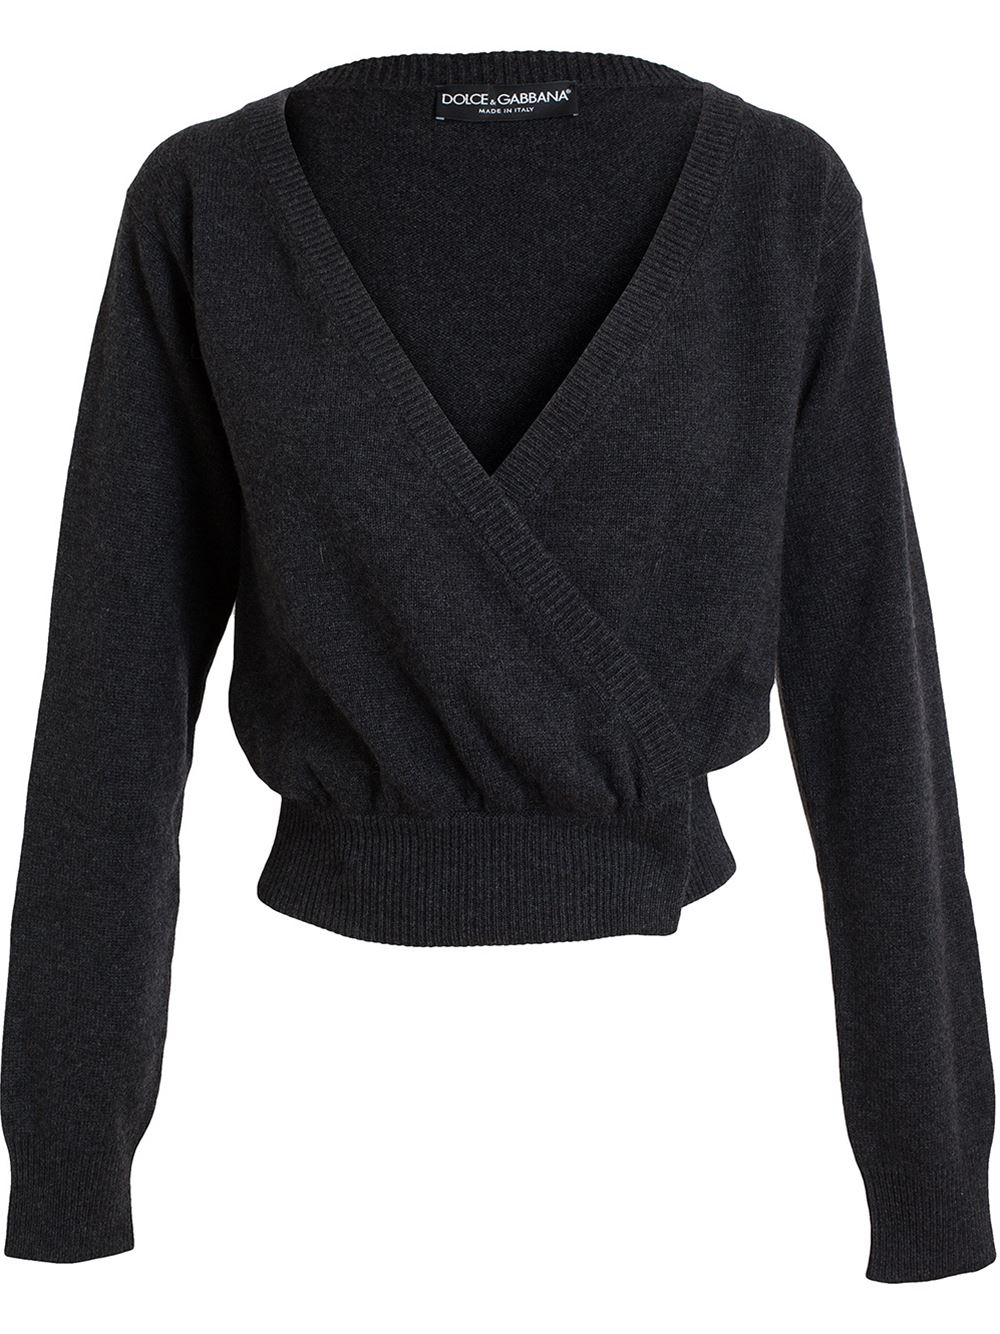 Dolce & gabbana Cashmere Wrap Cardigan in Gray | Lyst